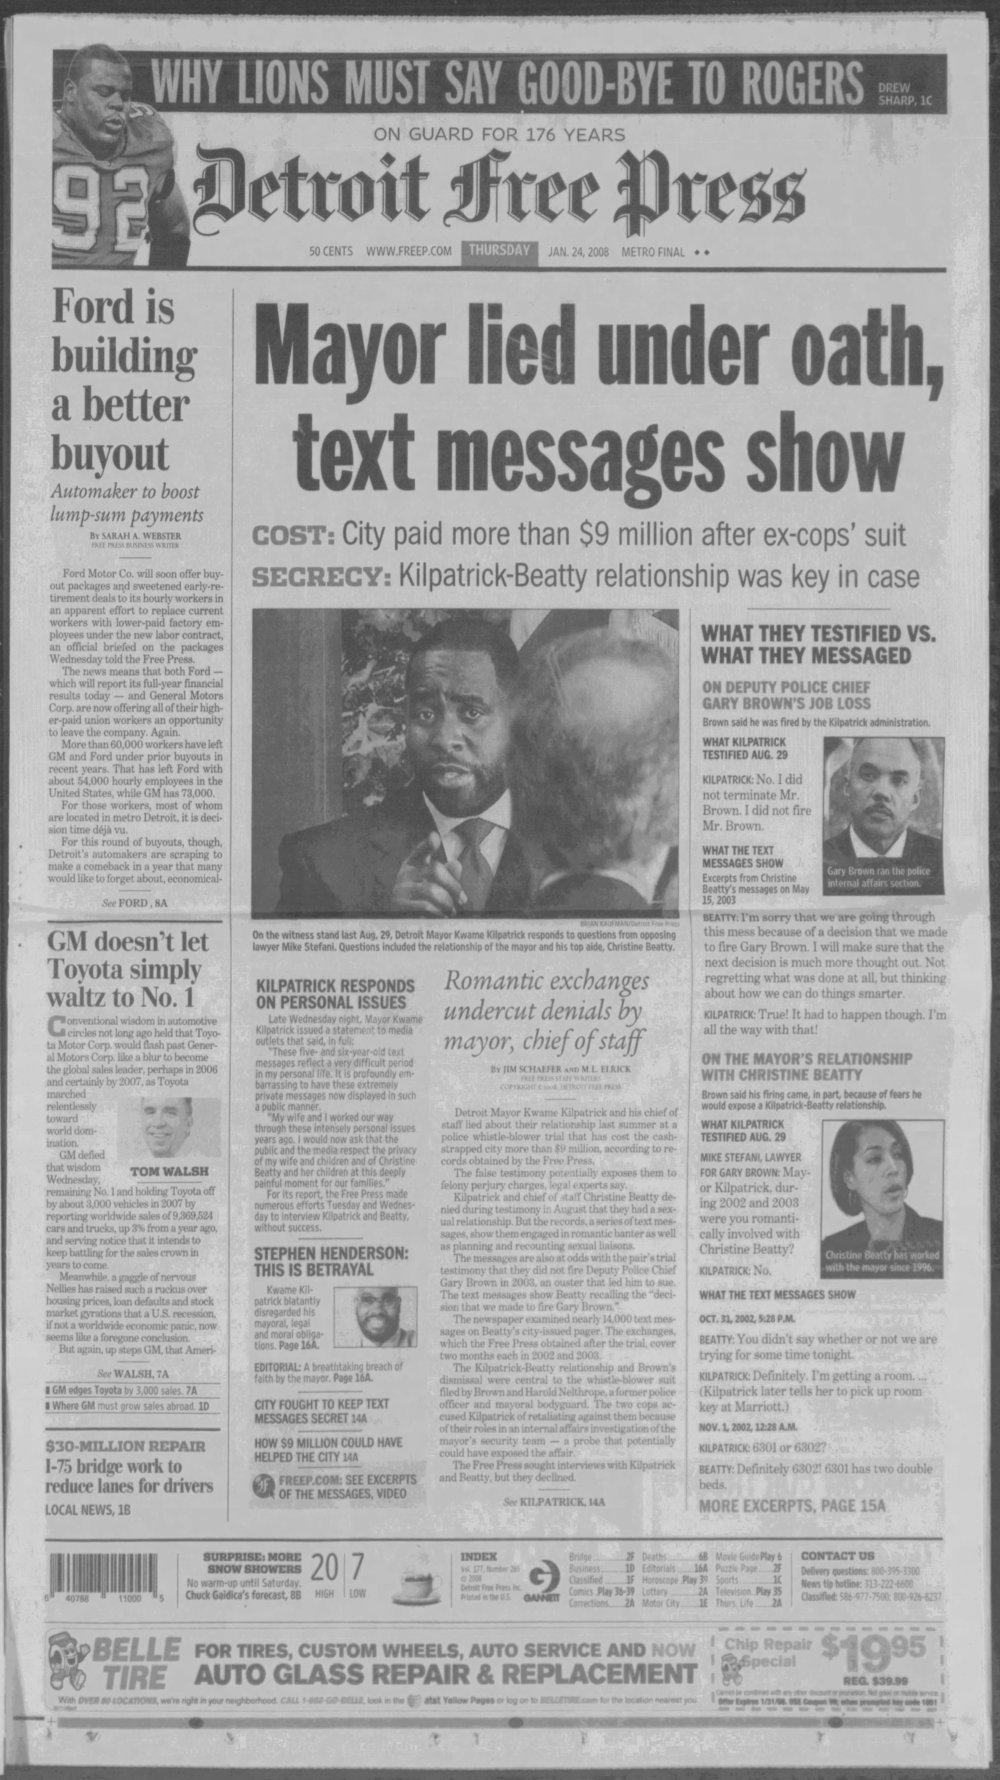 Detroit_Free_Press_Thu__Jan_24__2008_.jpg